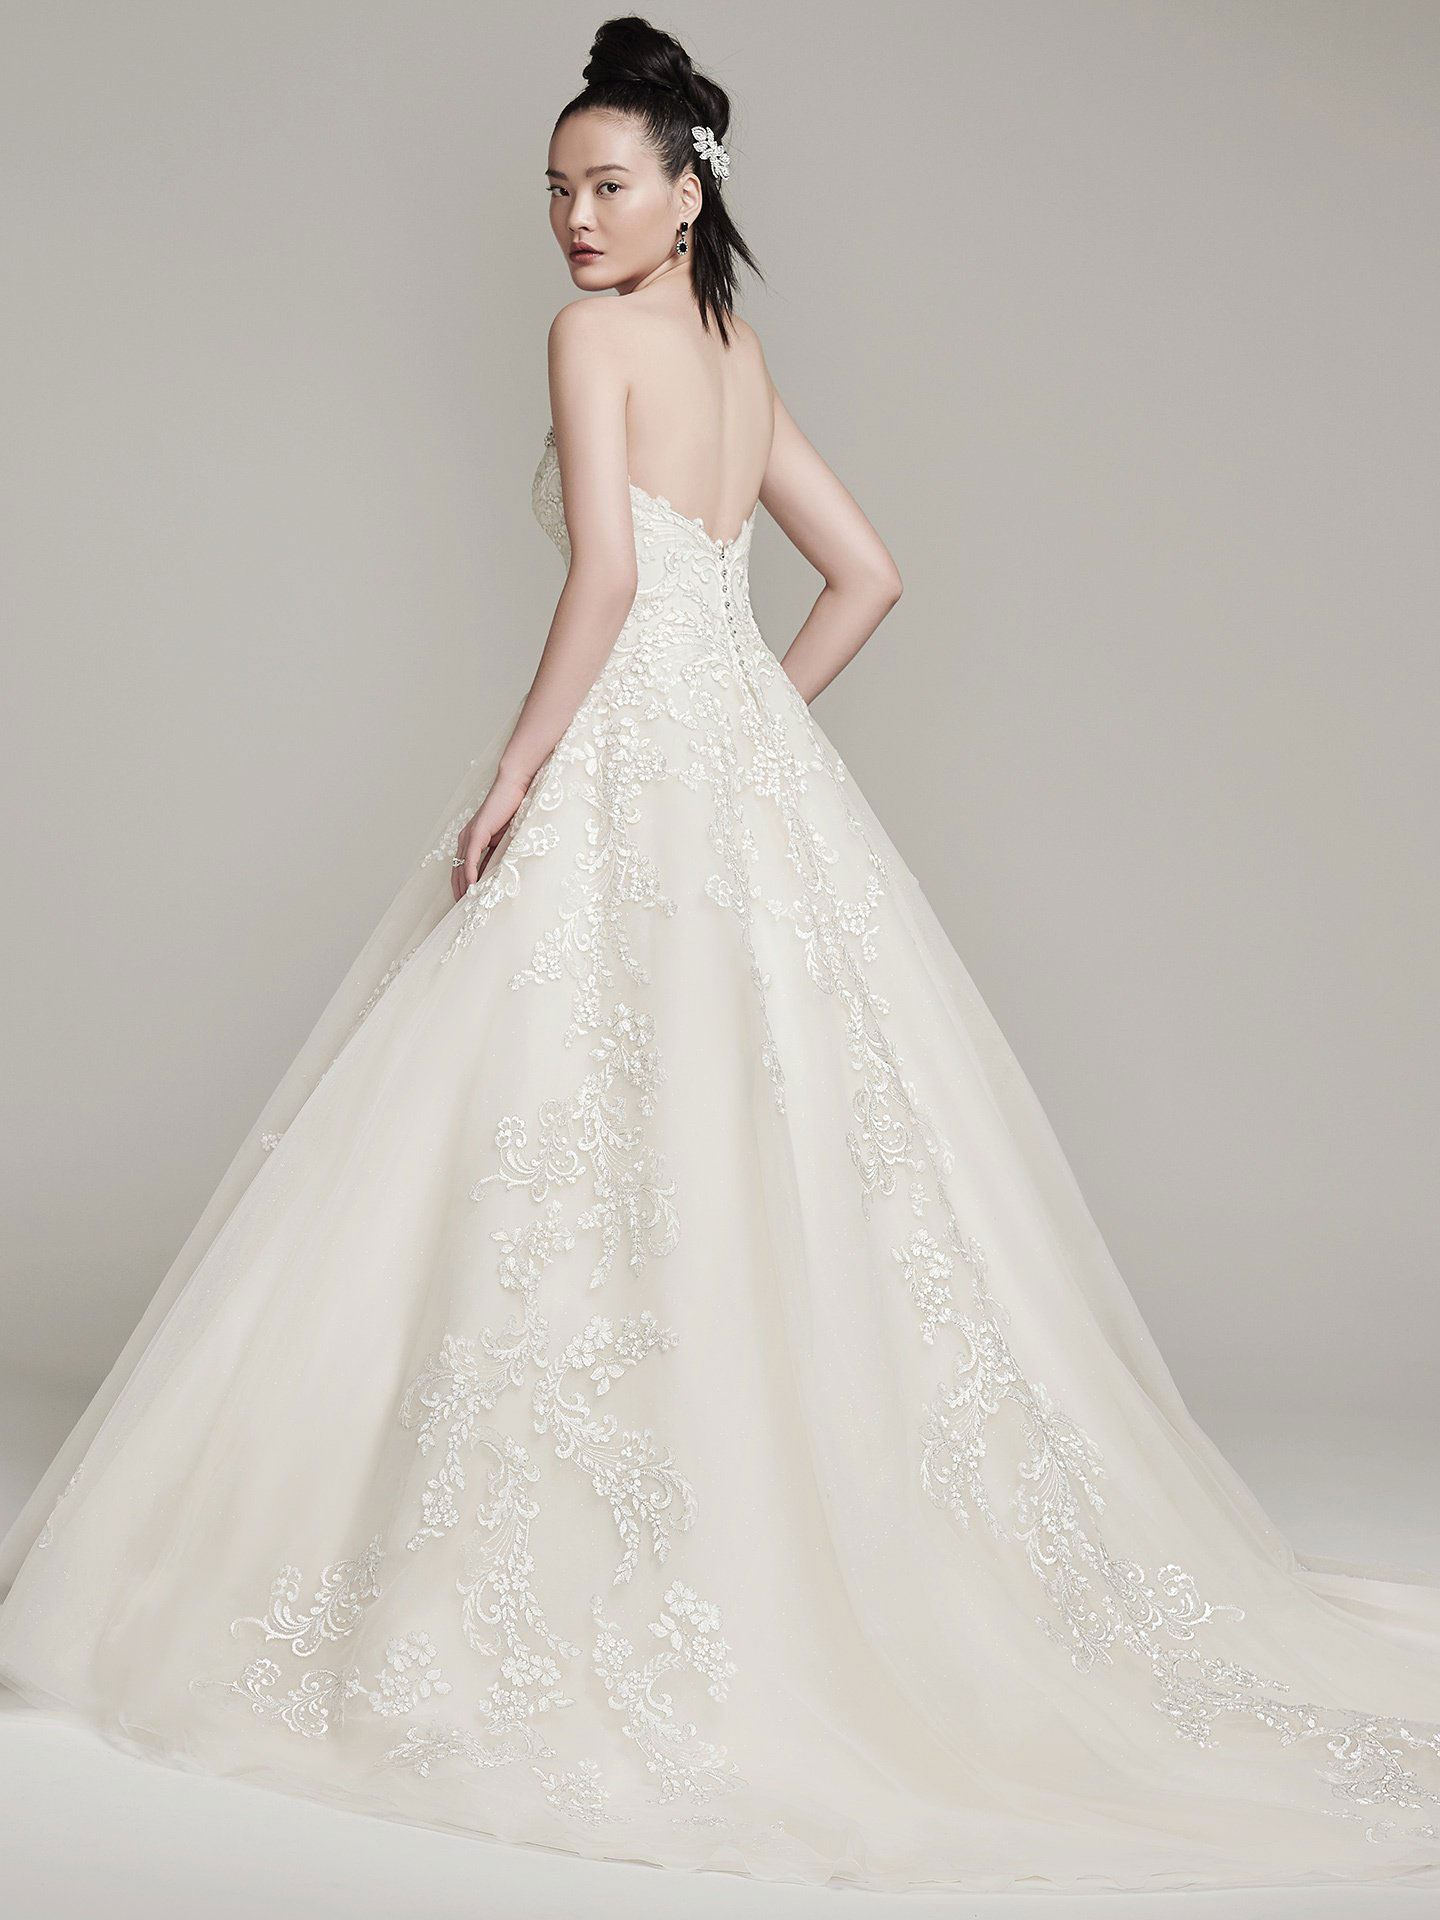 Sottero &#038; Midgley <br> Olga <br> Size 14 Was £1,580 Now £1,000